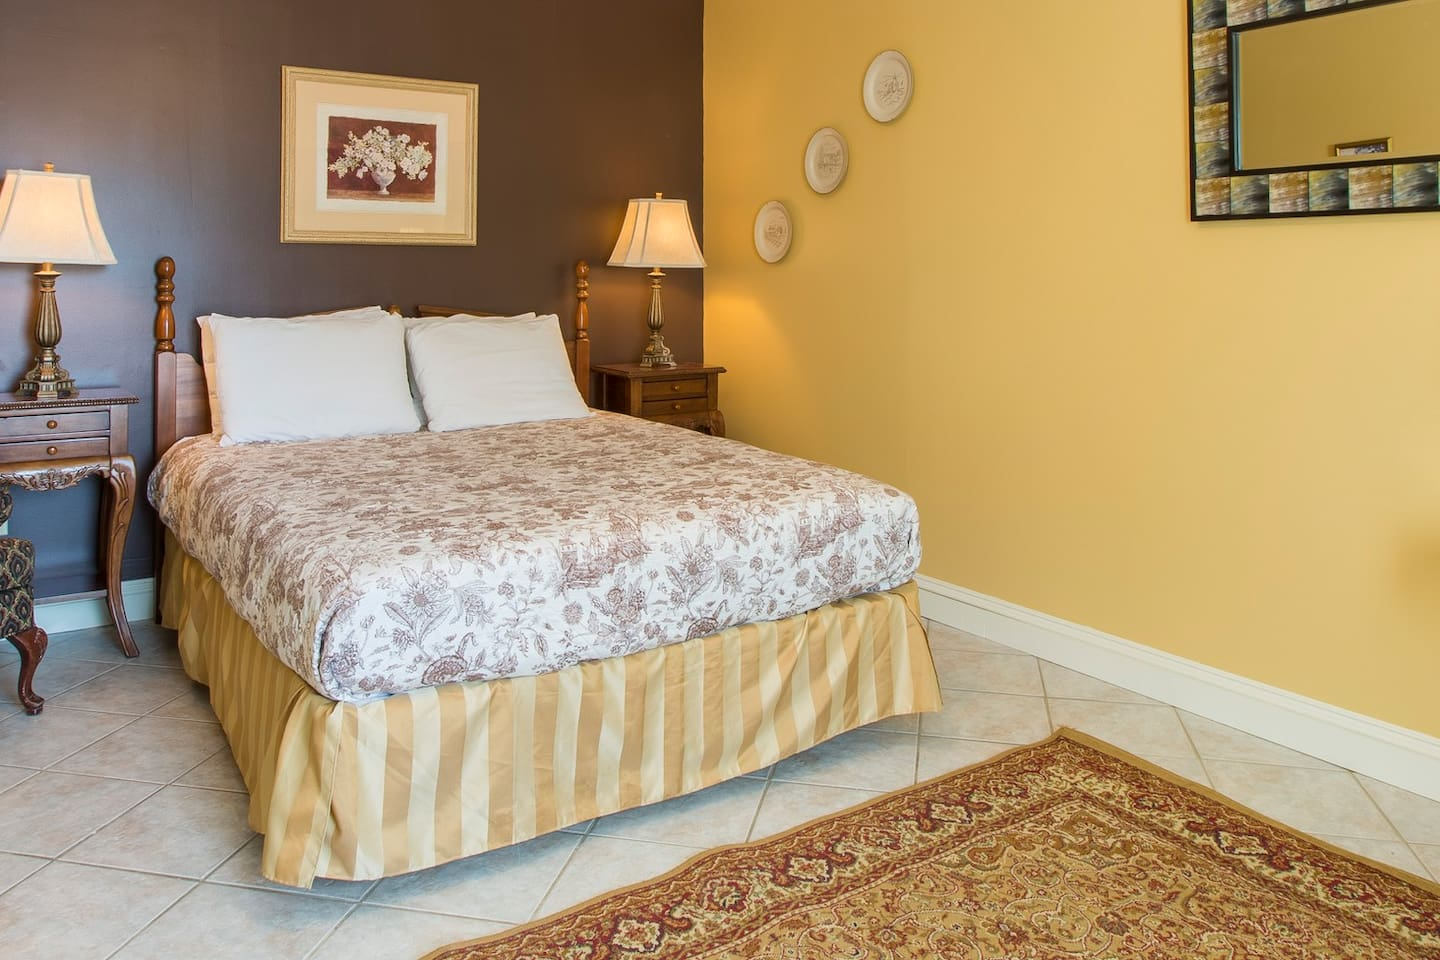 Queen bed in bedroom area that is somewhat separated from the kitchen